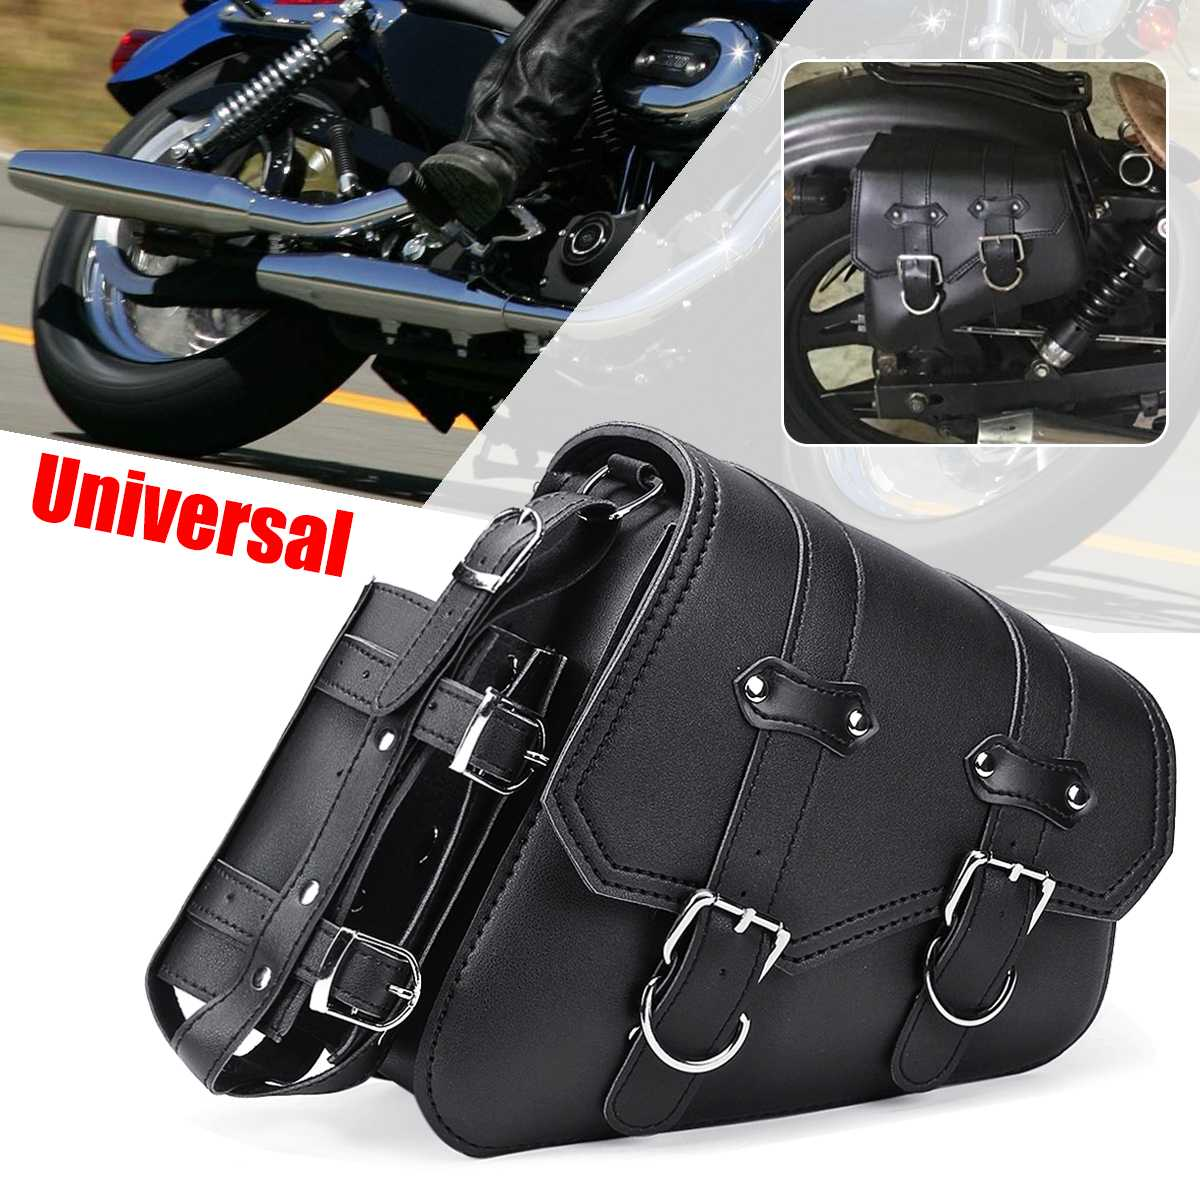 Areyourshop Coussin de dossier universel pour moto Sissy Bar Pad Custom Bikes Choppers Touring Cruiser